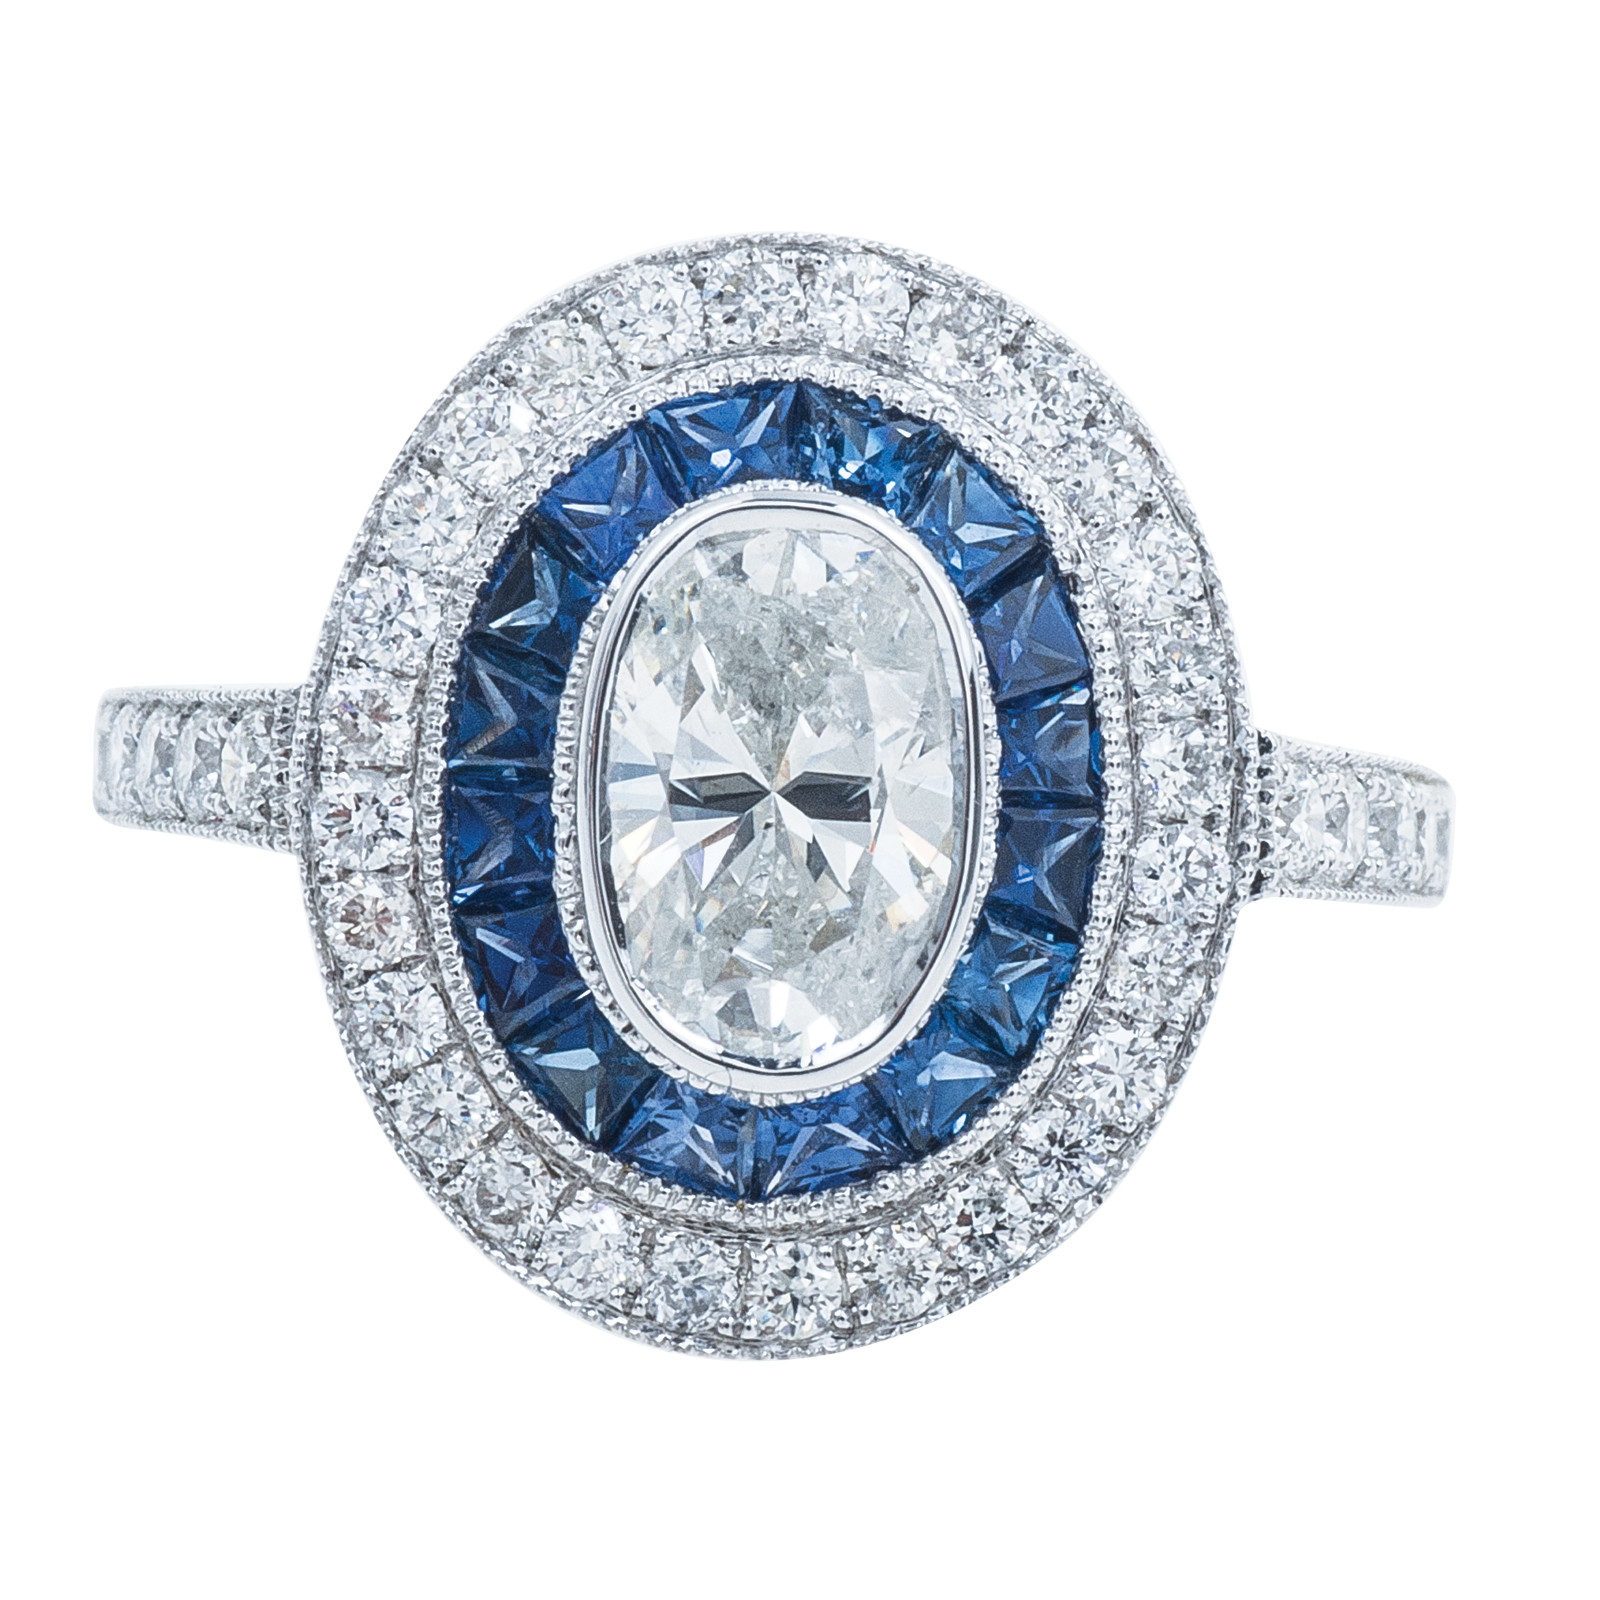 New 2.33 CTW Diamond & Sapphire Halo Engagement Ring